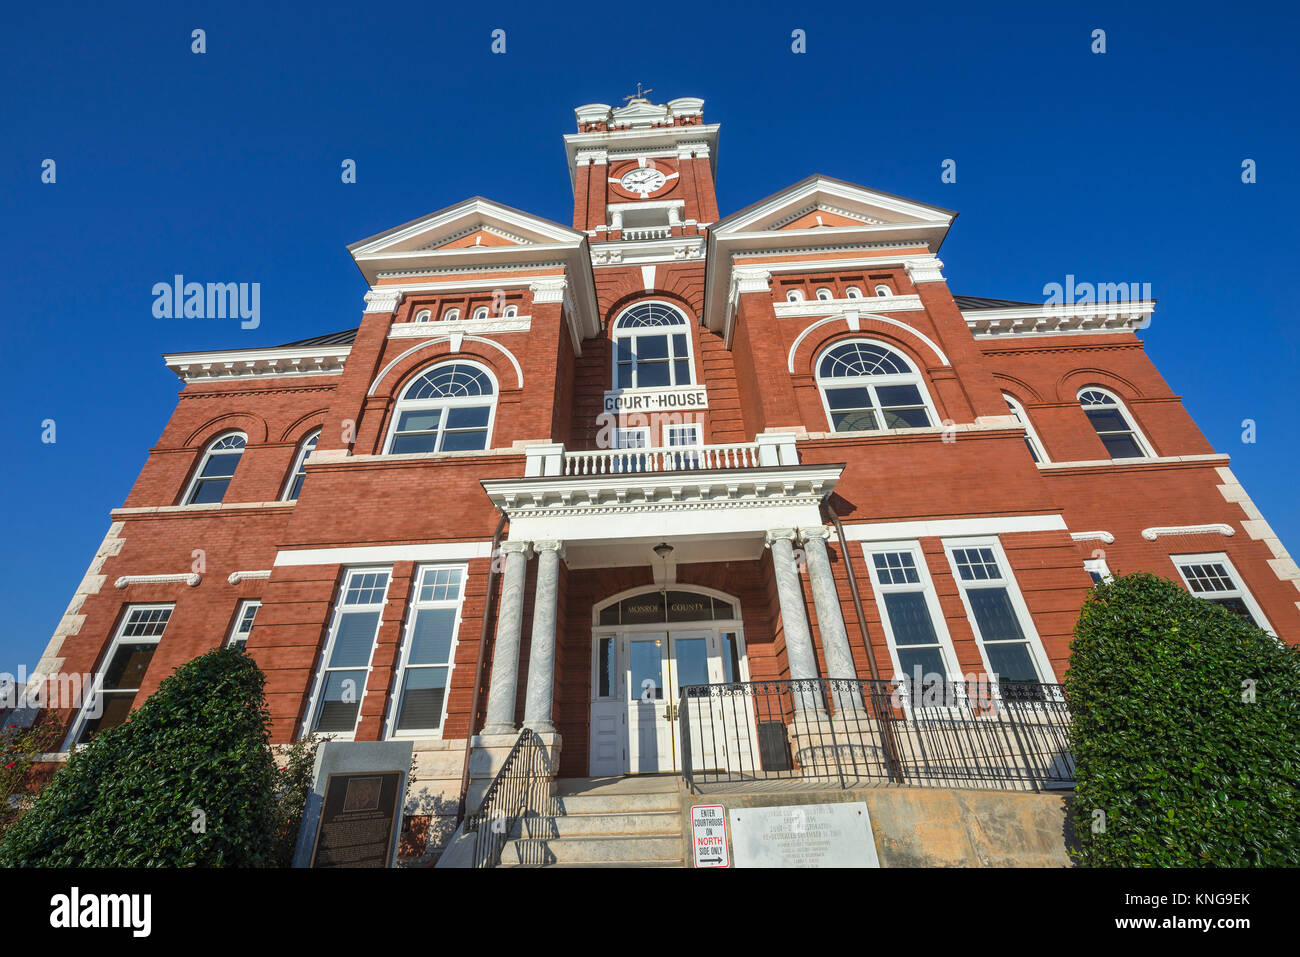 Monroe County Courthouse in Forsyth, Georgia, was built in 1896 and